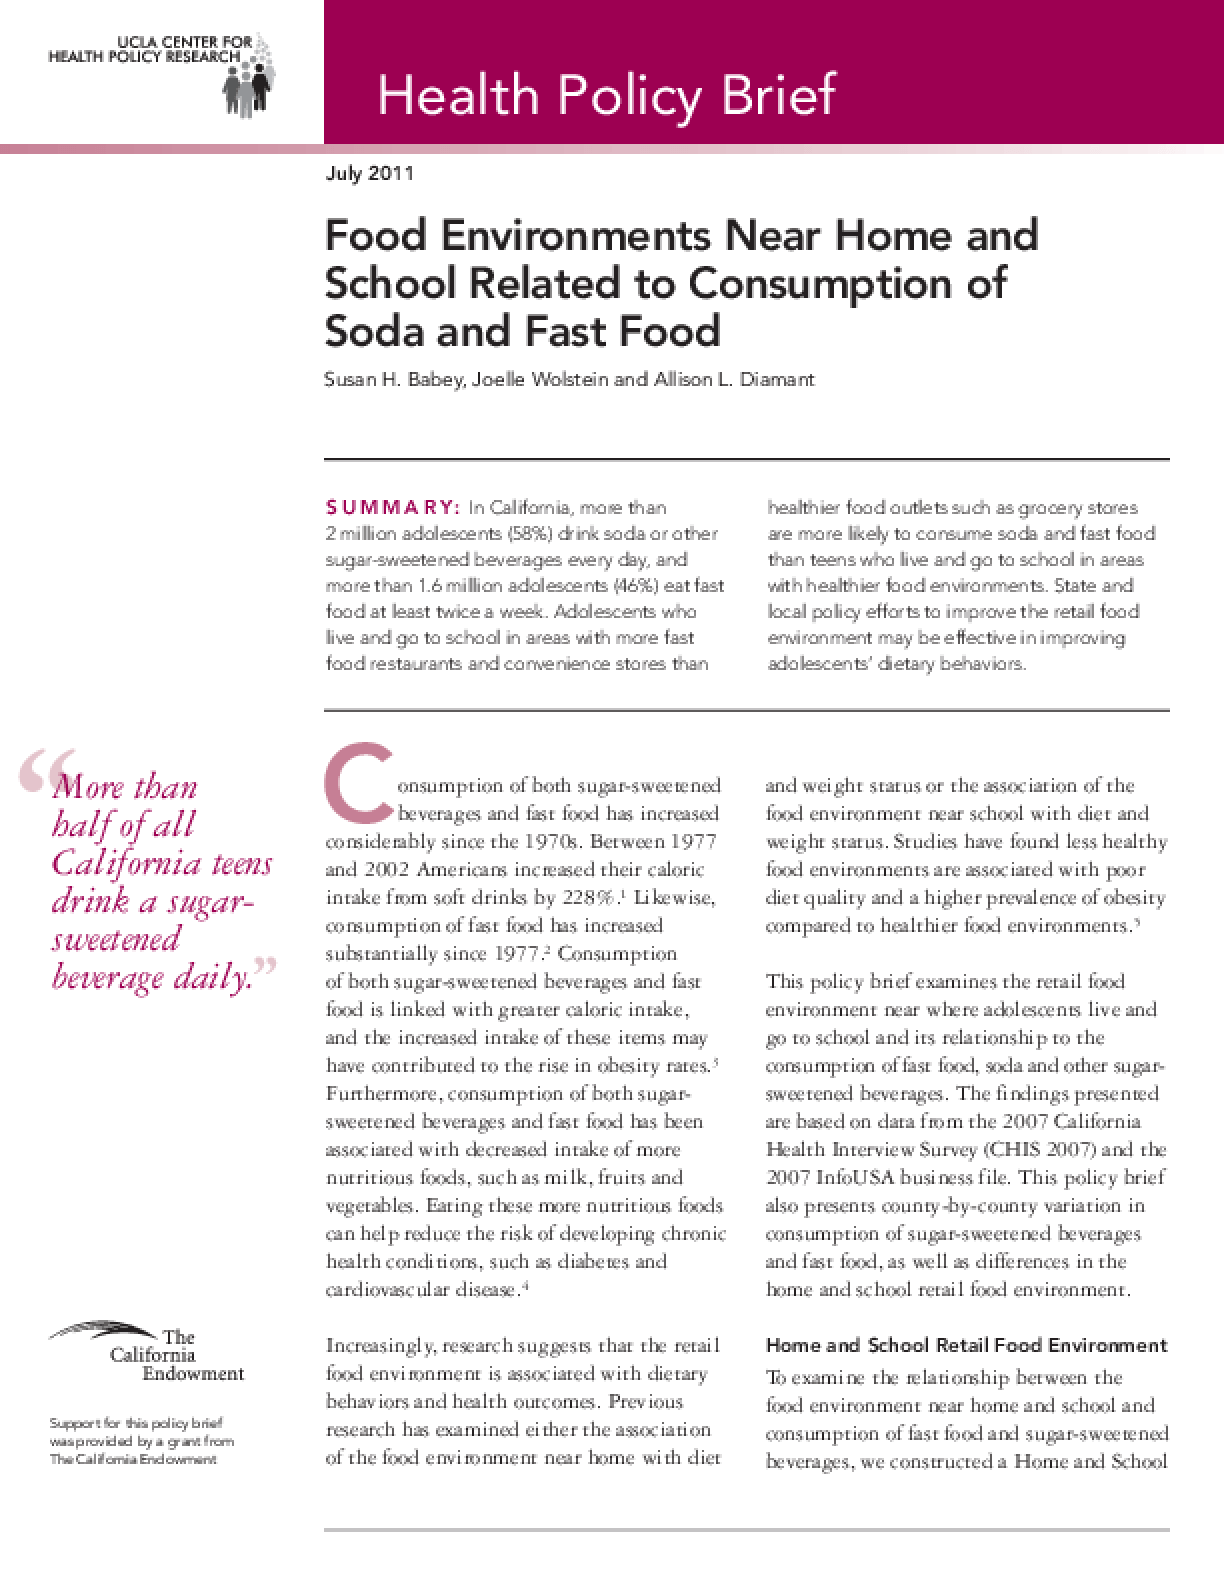 Food Environments Near Home and School Related to Consumption of Soda and Fast Food